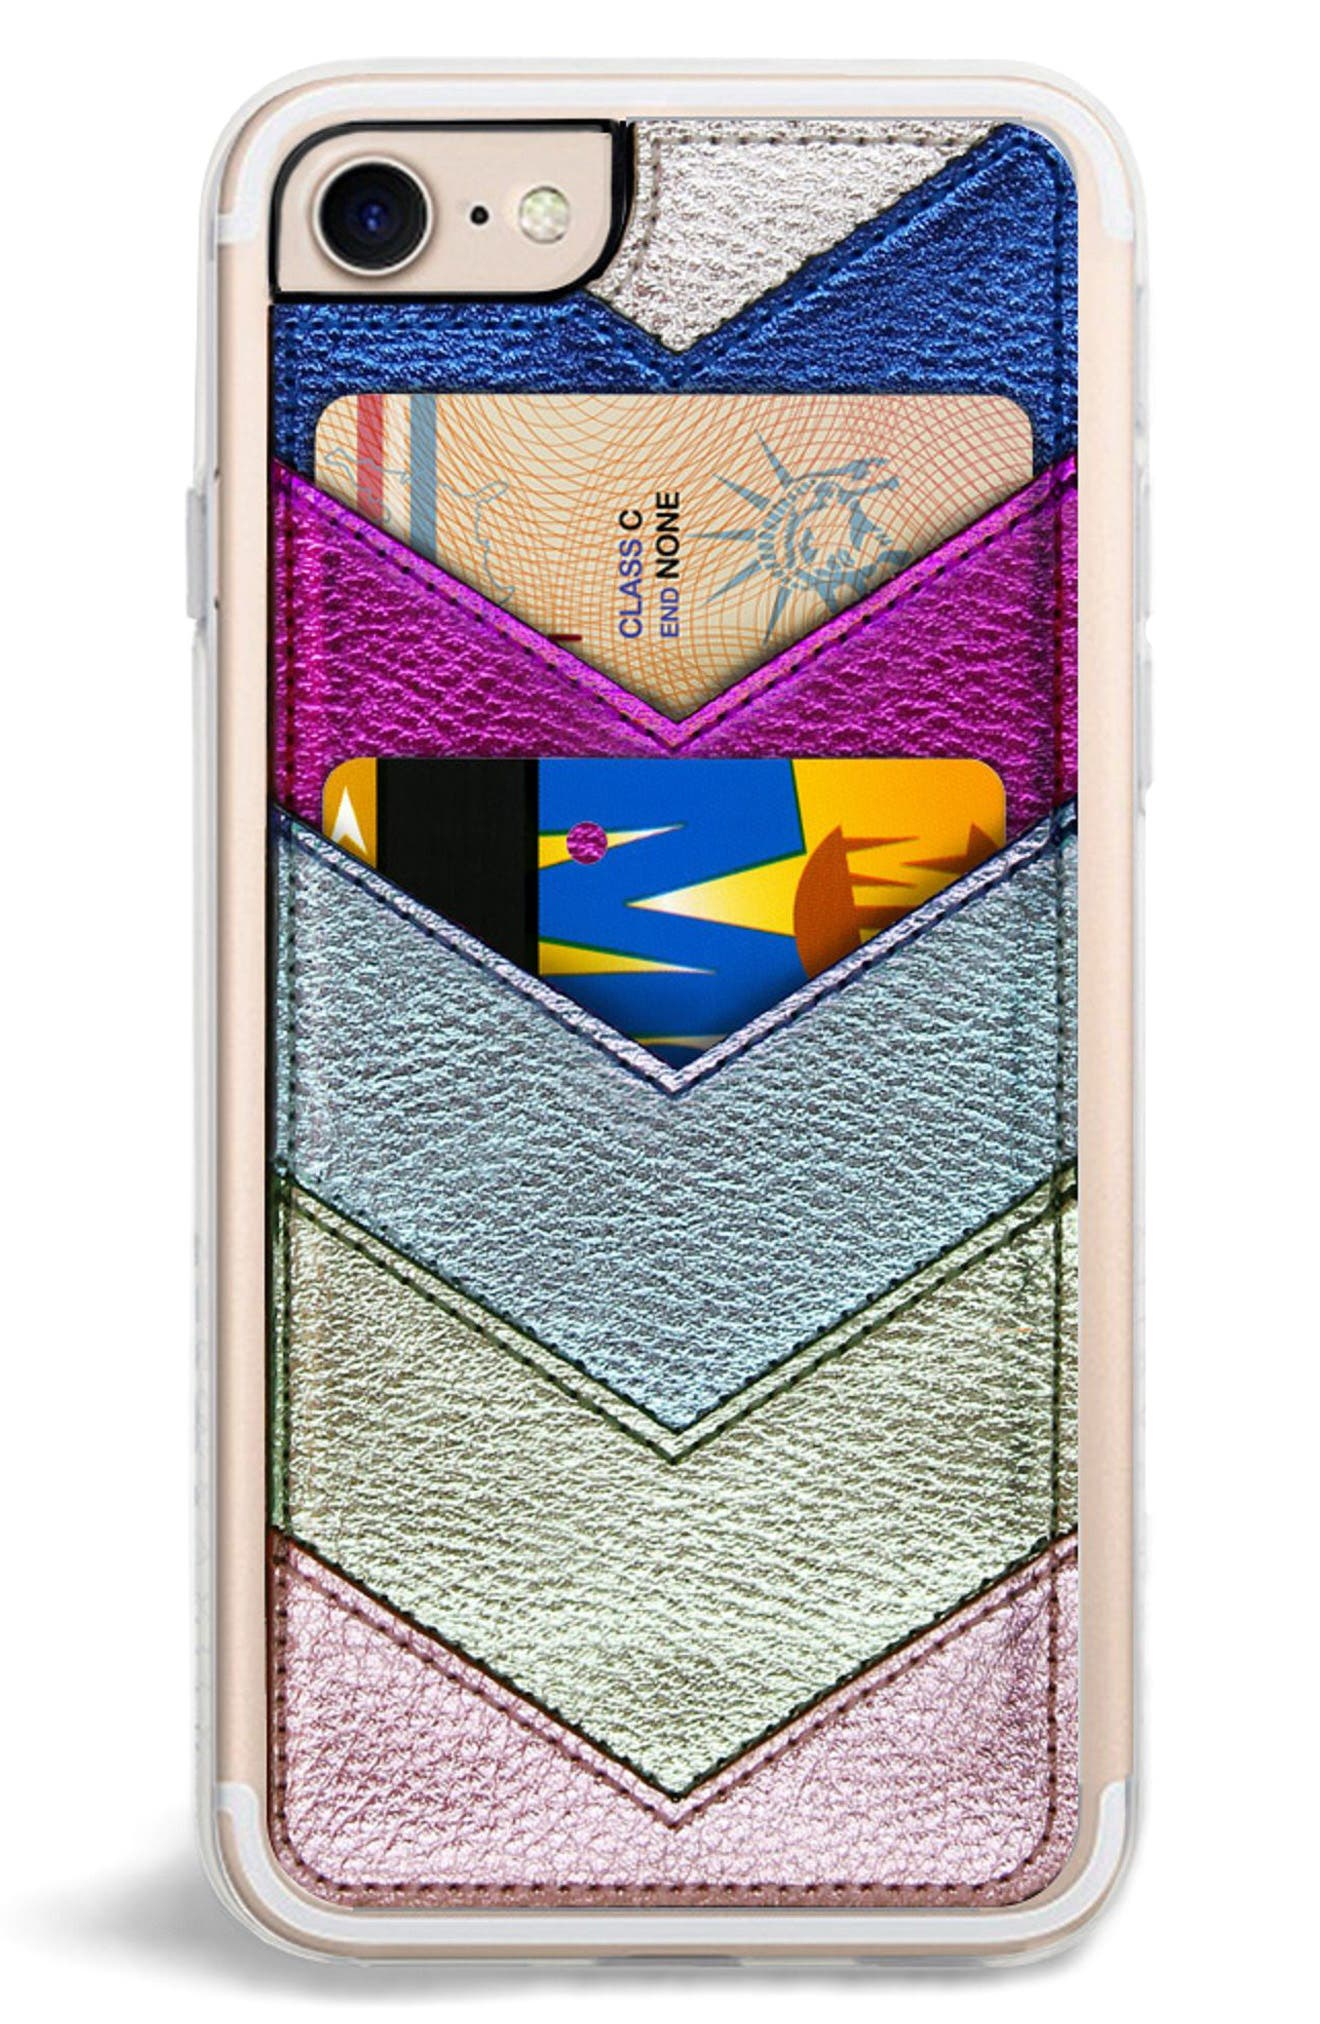 Zero Gravity Chevron Faux Leather iPhone 6/6s/7/8 & 6/6s/7/8 Plus Case